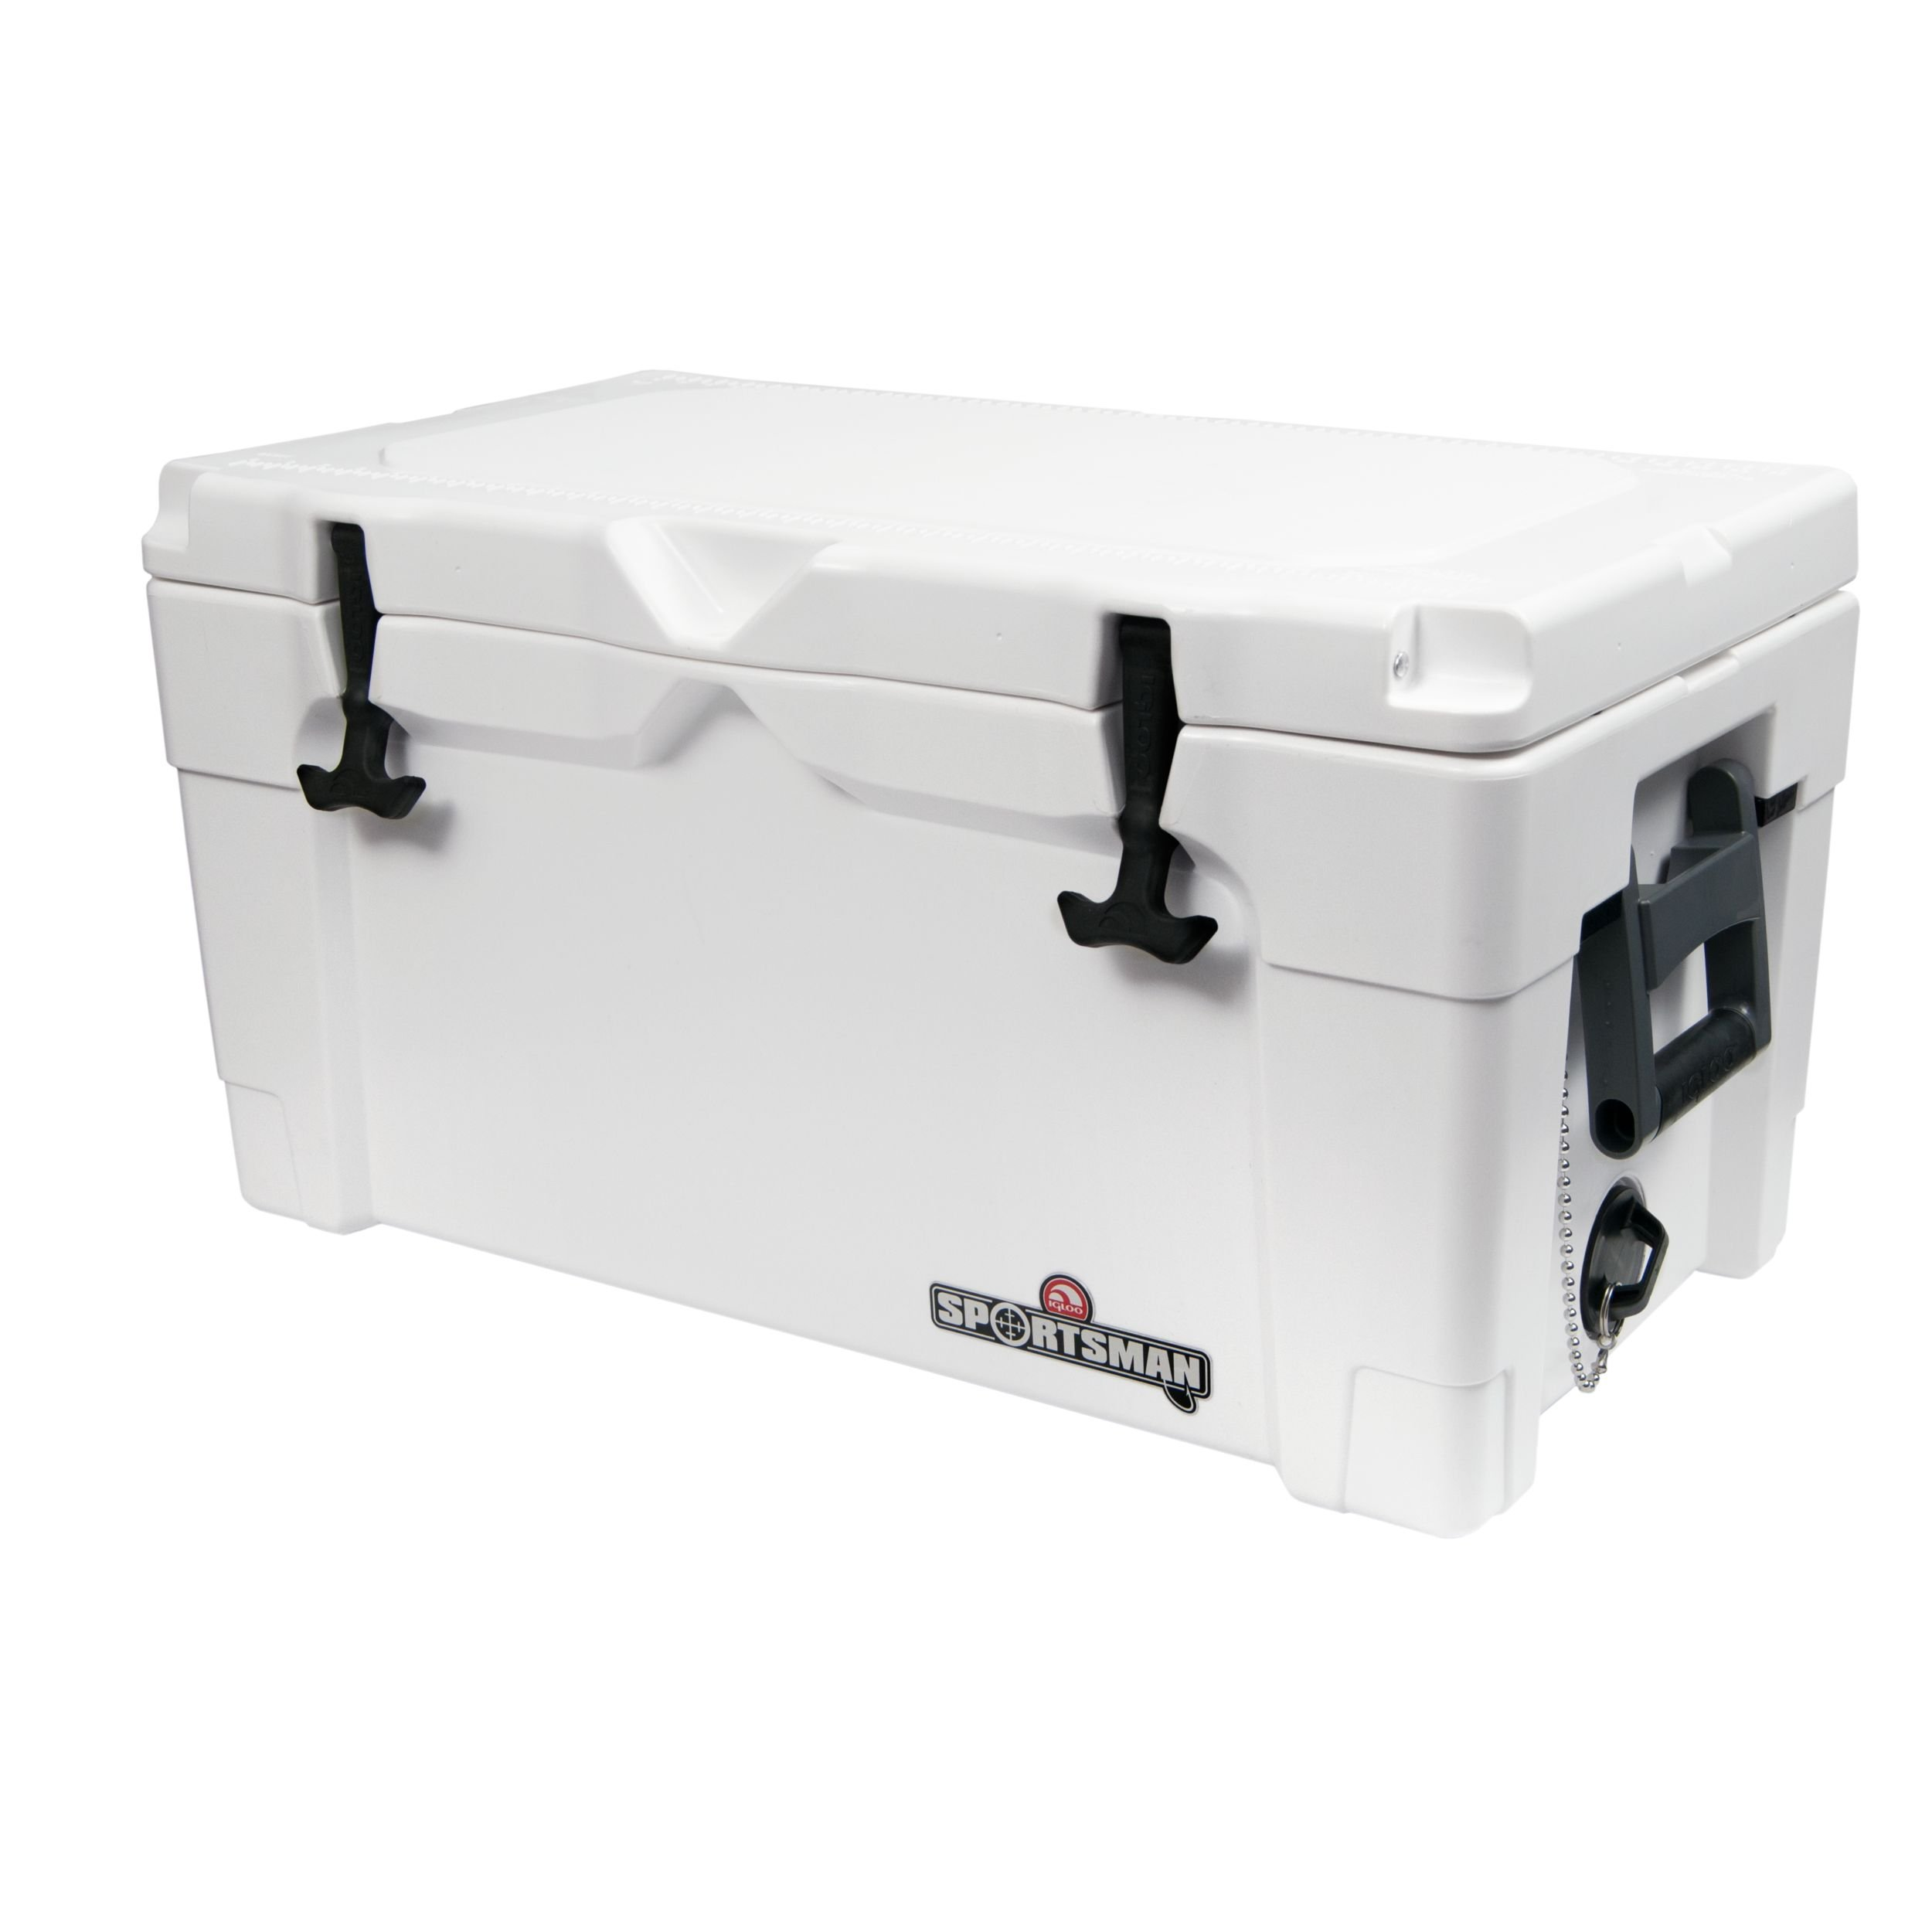 Igloo Products Sportsman 5 Quart Cooler, White by Igloo